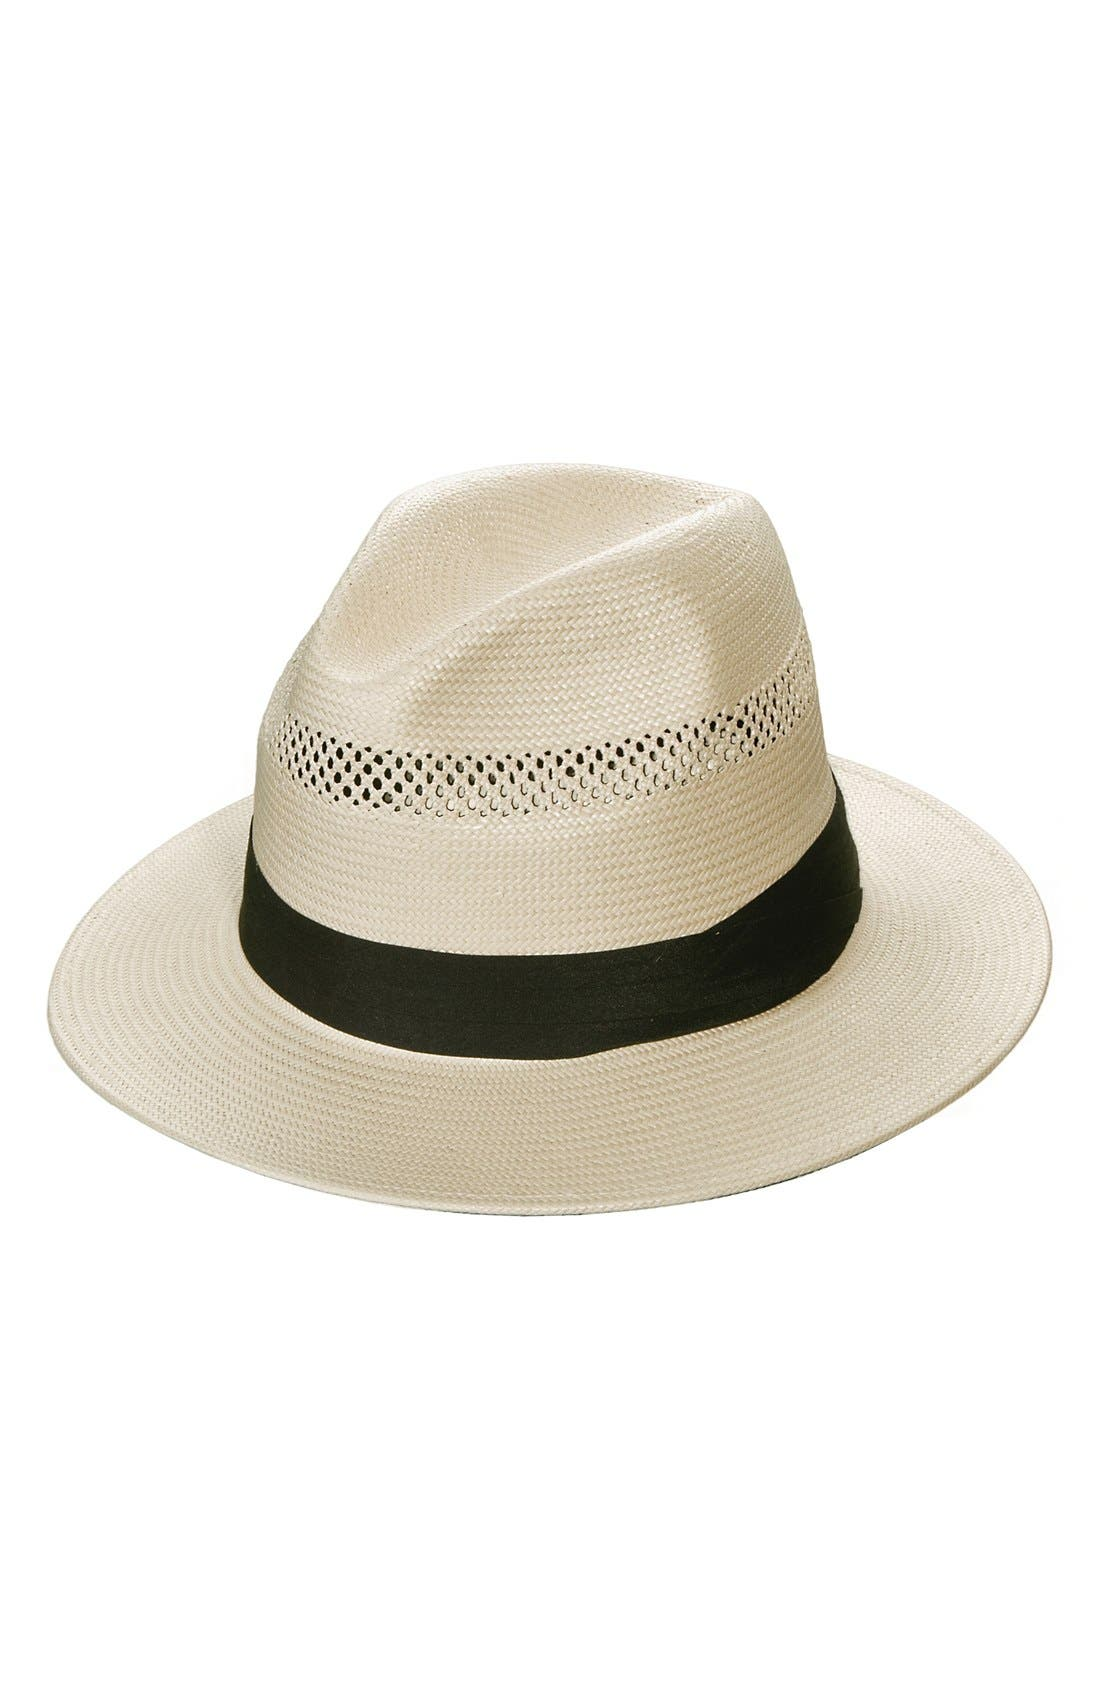 Straw Fedora,                             Main thumbnail 1, color,                             101